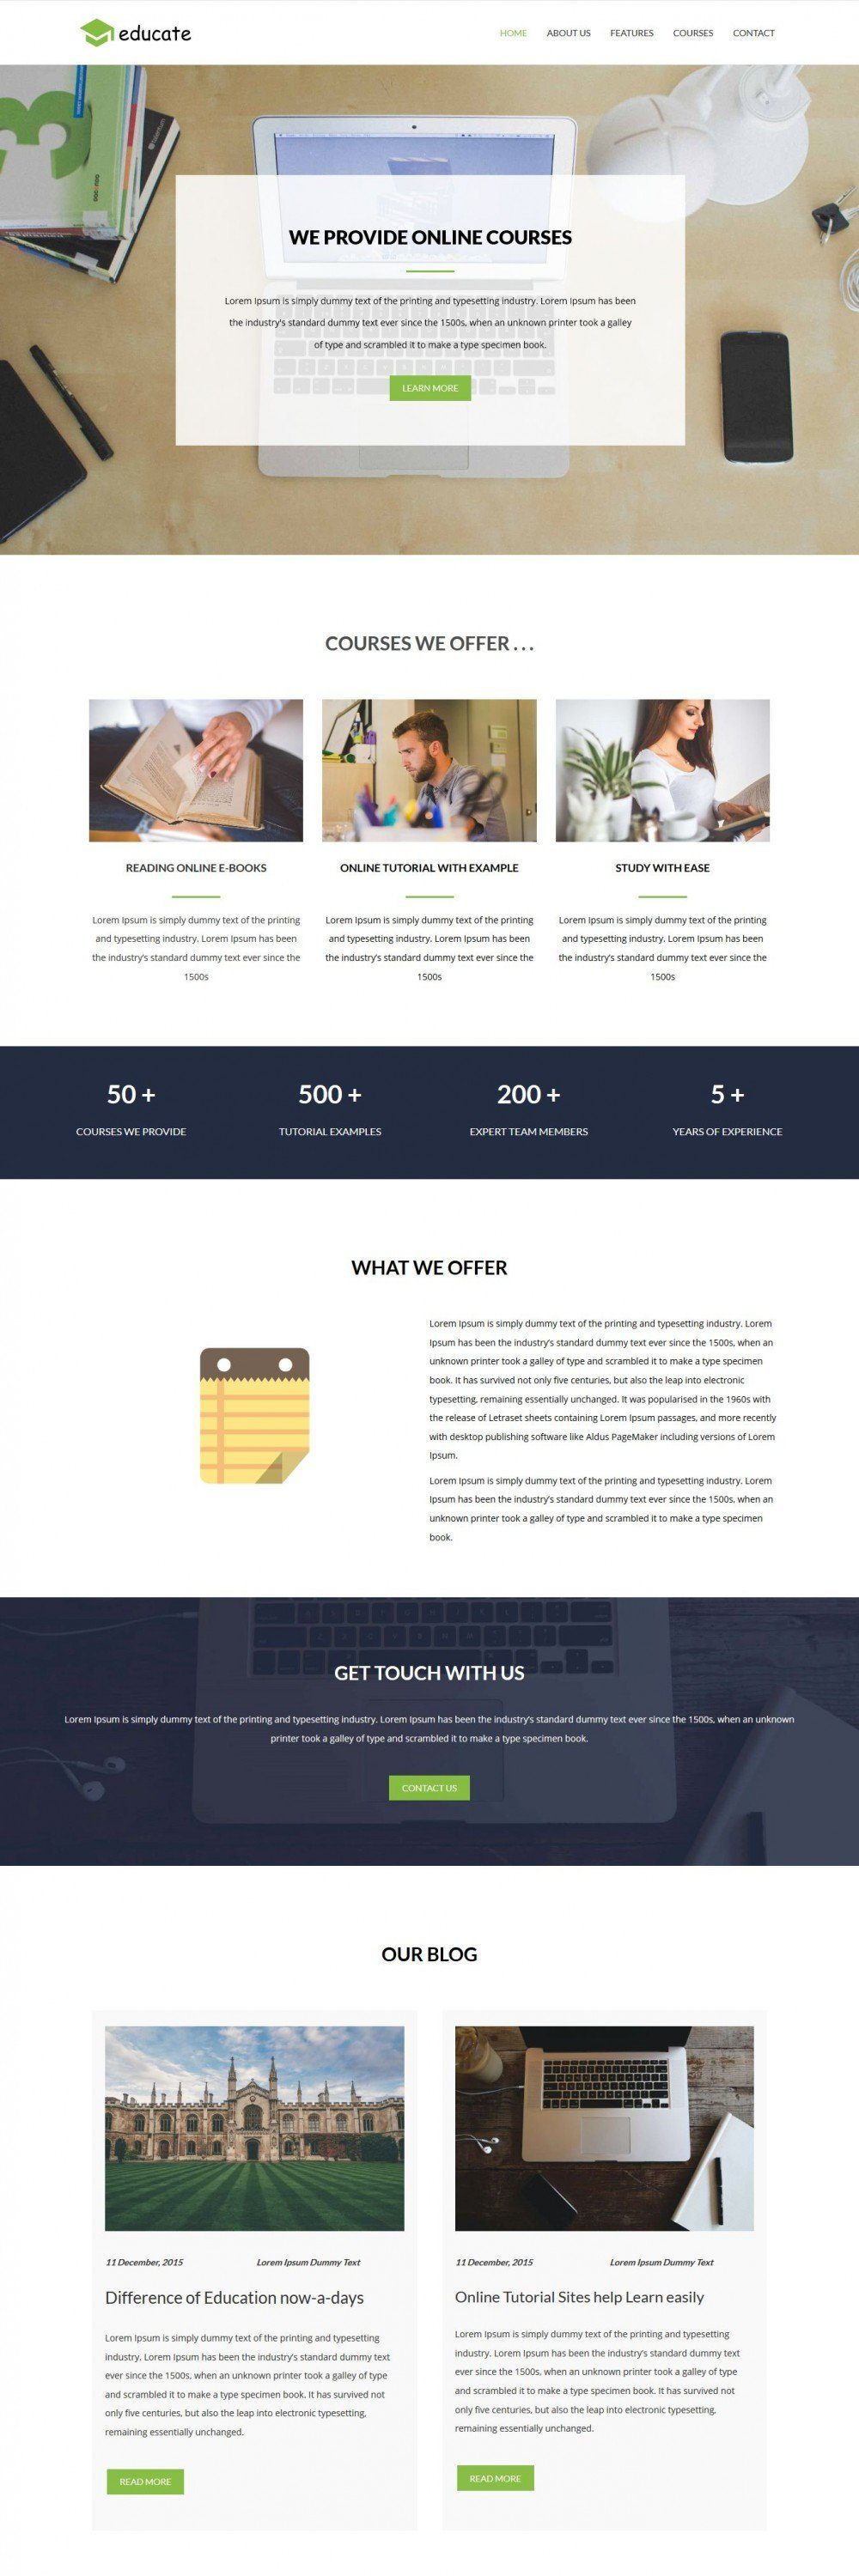 Educate - Educational/Courses Center WordPress Theme